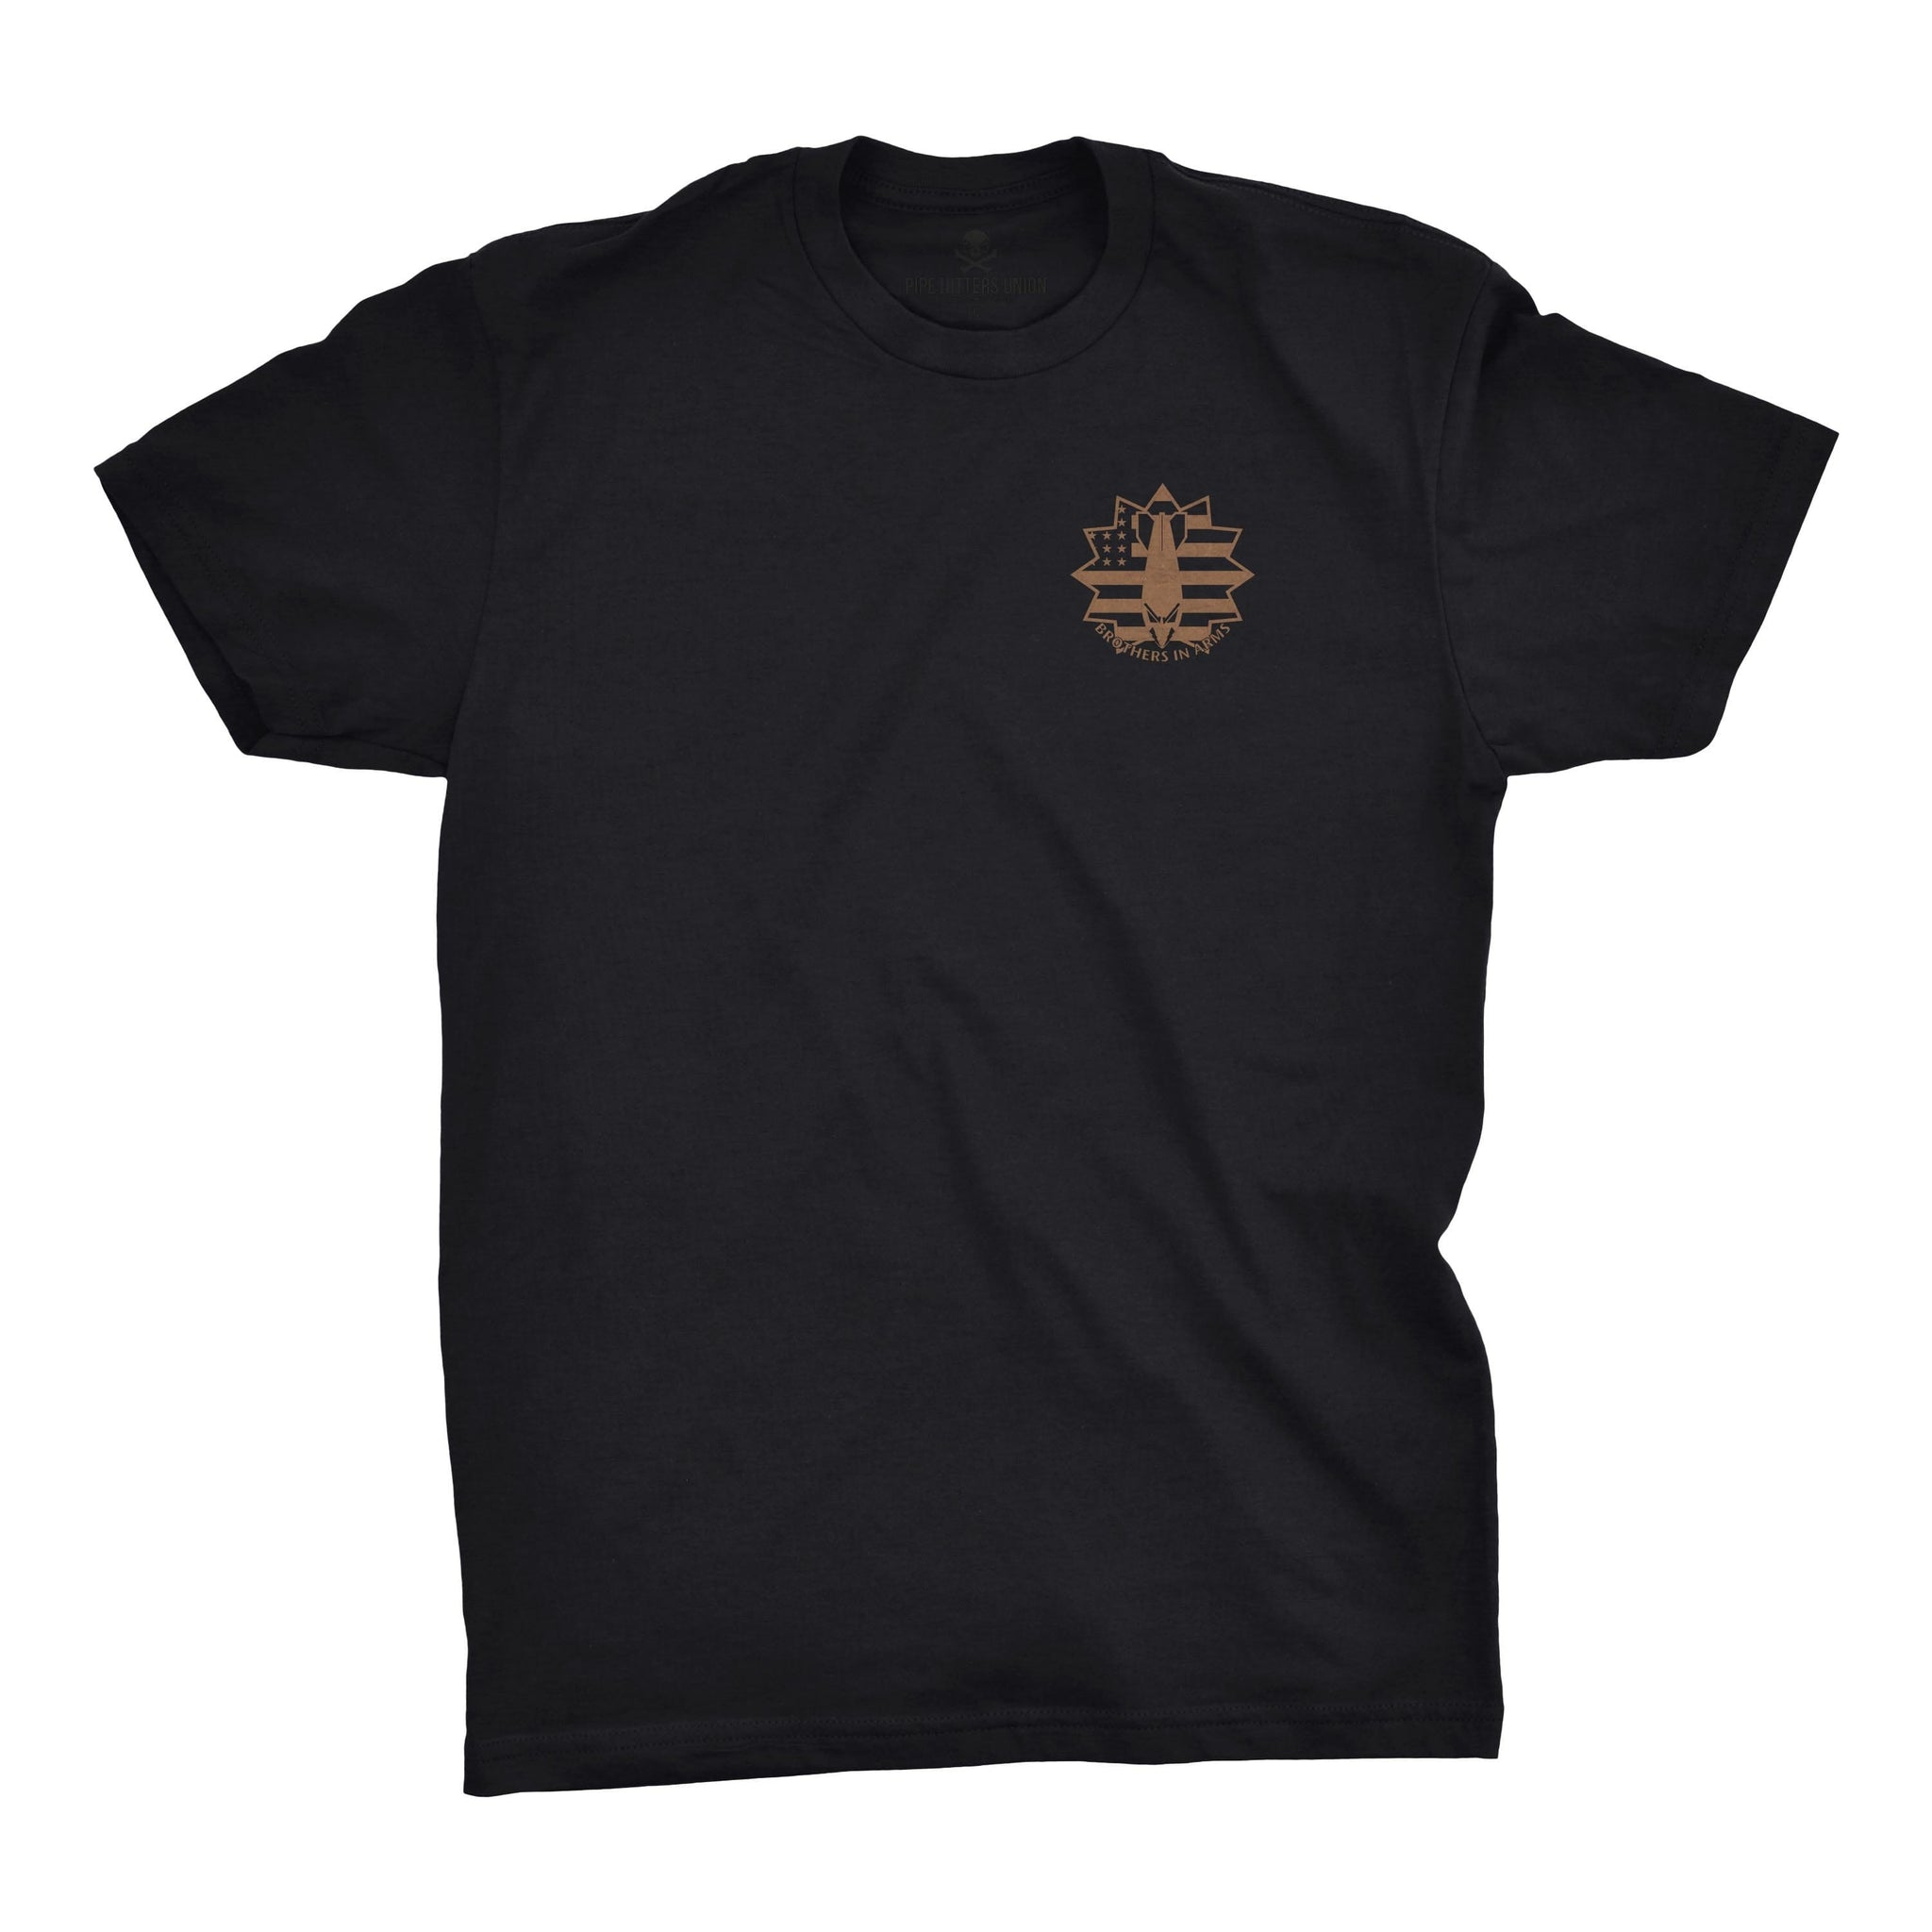 PHUMC Danger Close Chapter Tee - Black - T-Shirts - Pipe Hitters Union